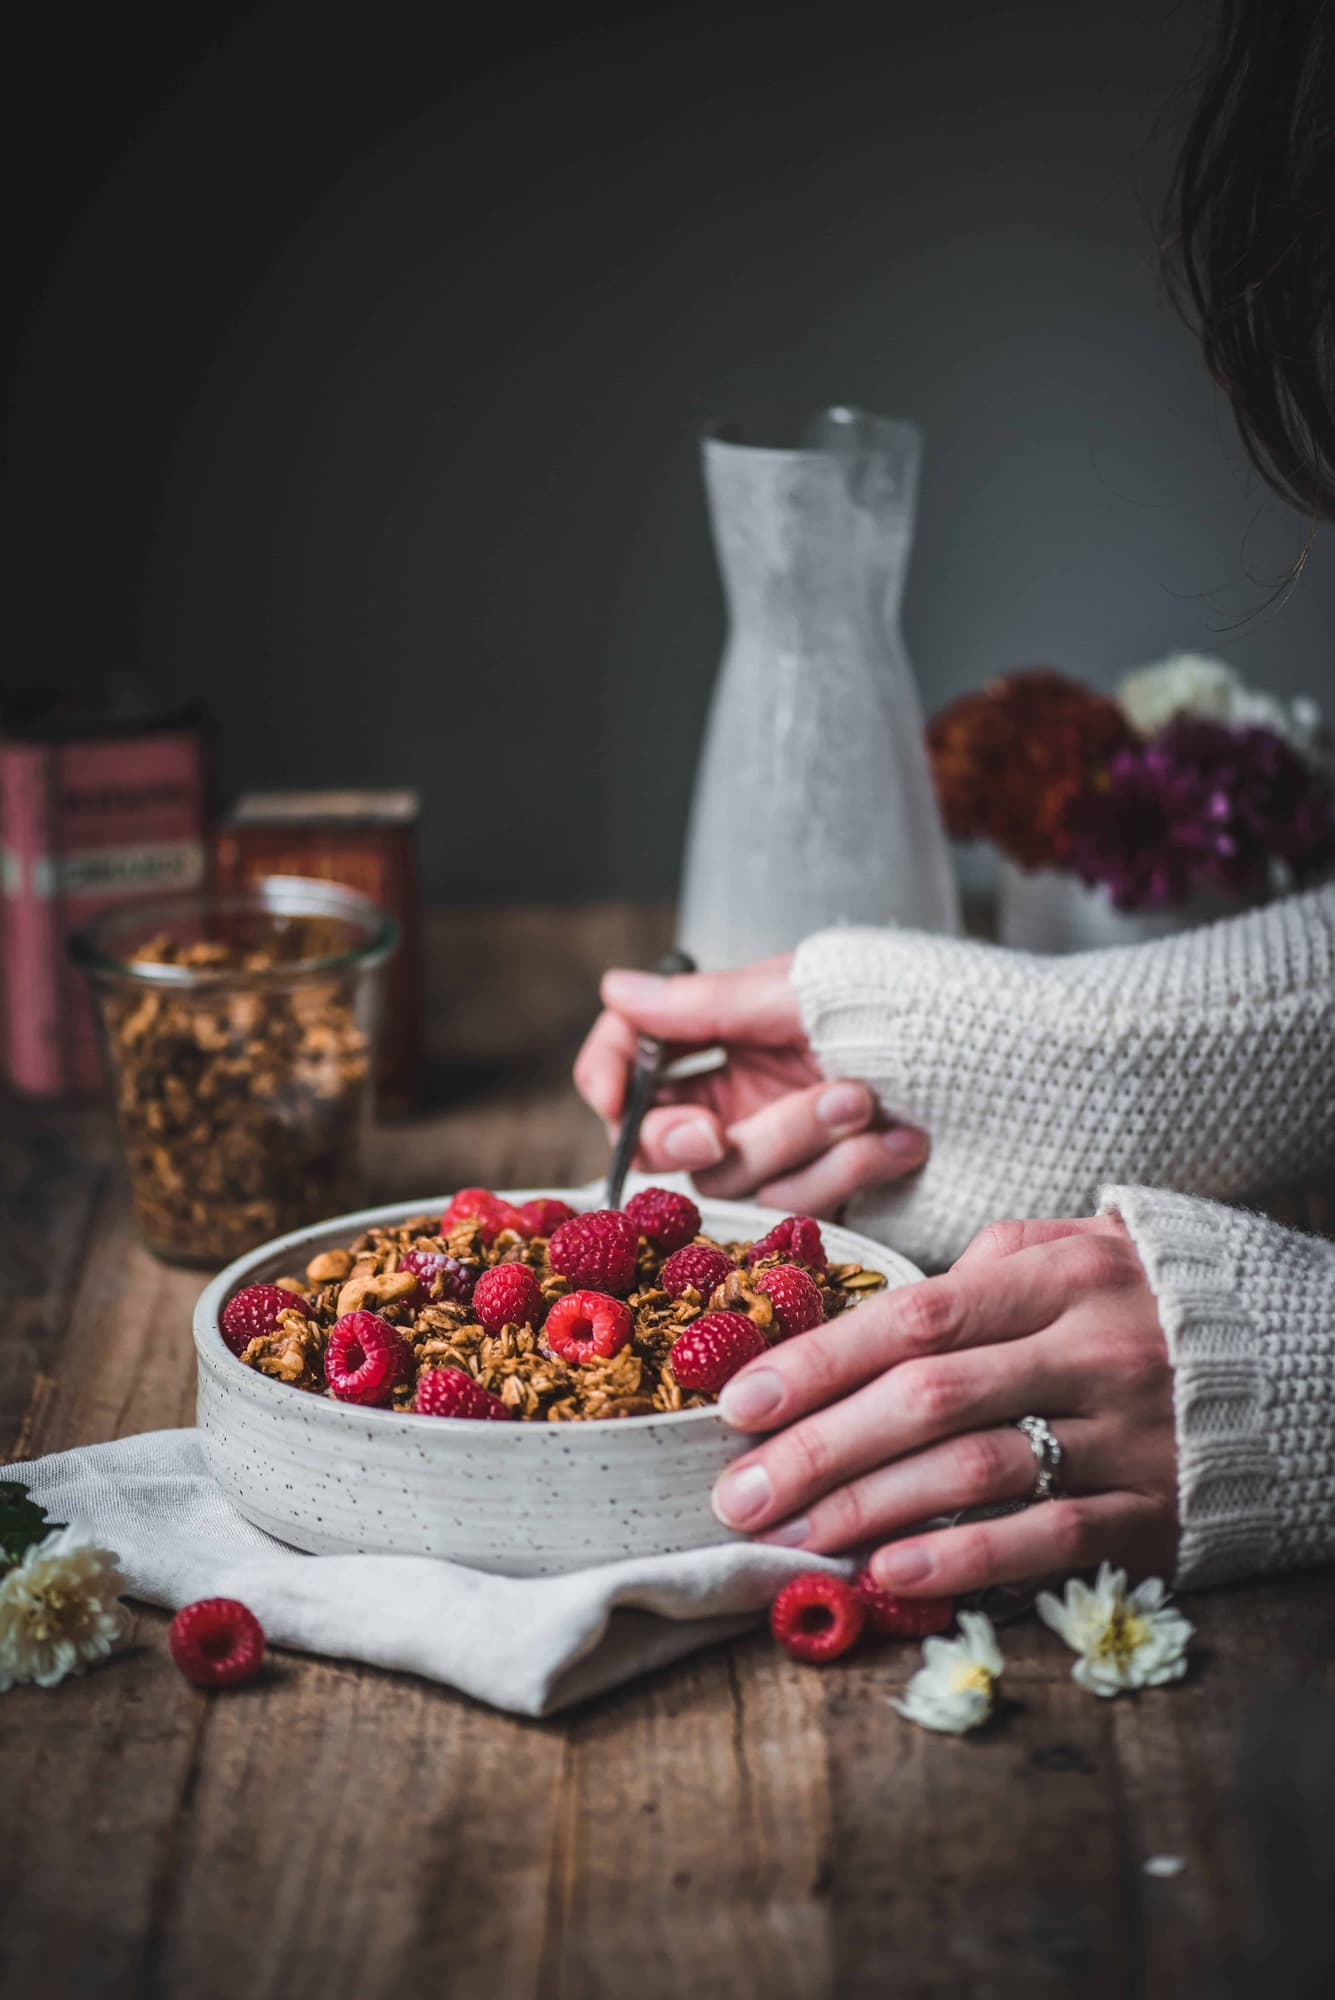 Side view of pumpkin spice granola with milk and fresh raspberries in a white bowl on rustic wood table. Person holding spoon about to eat granola